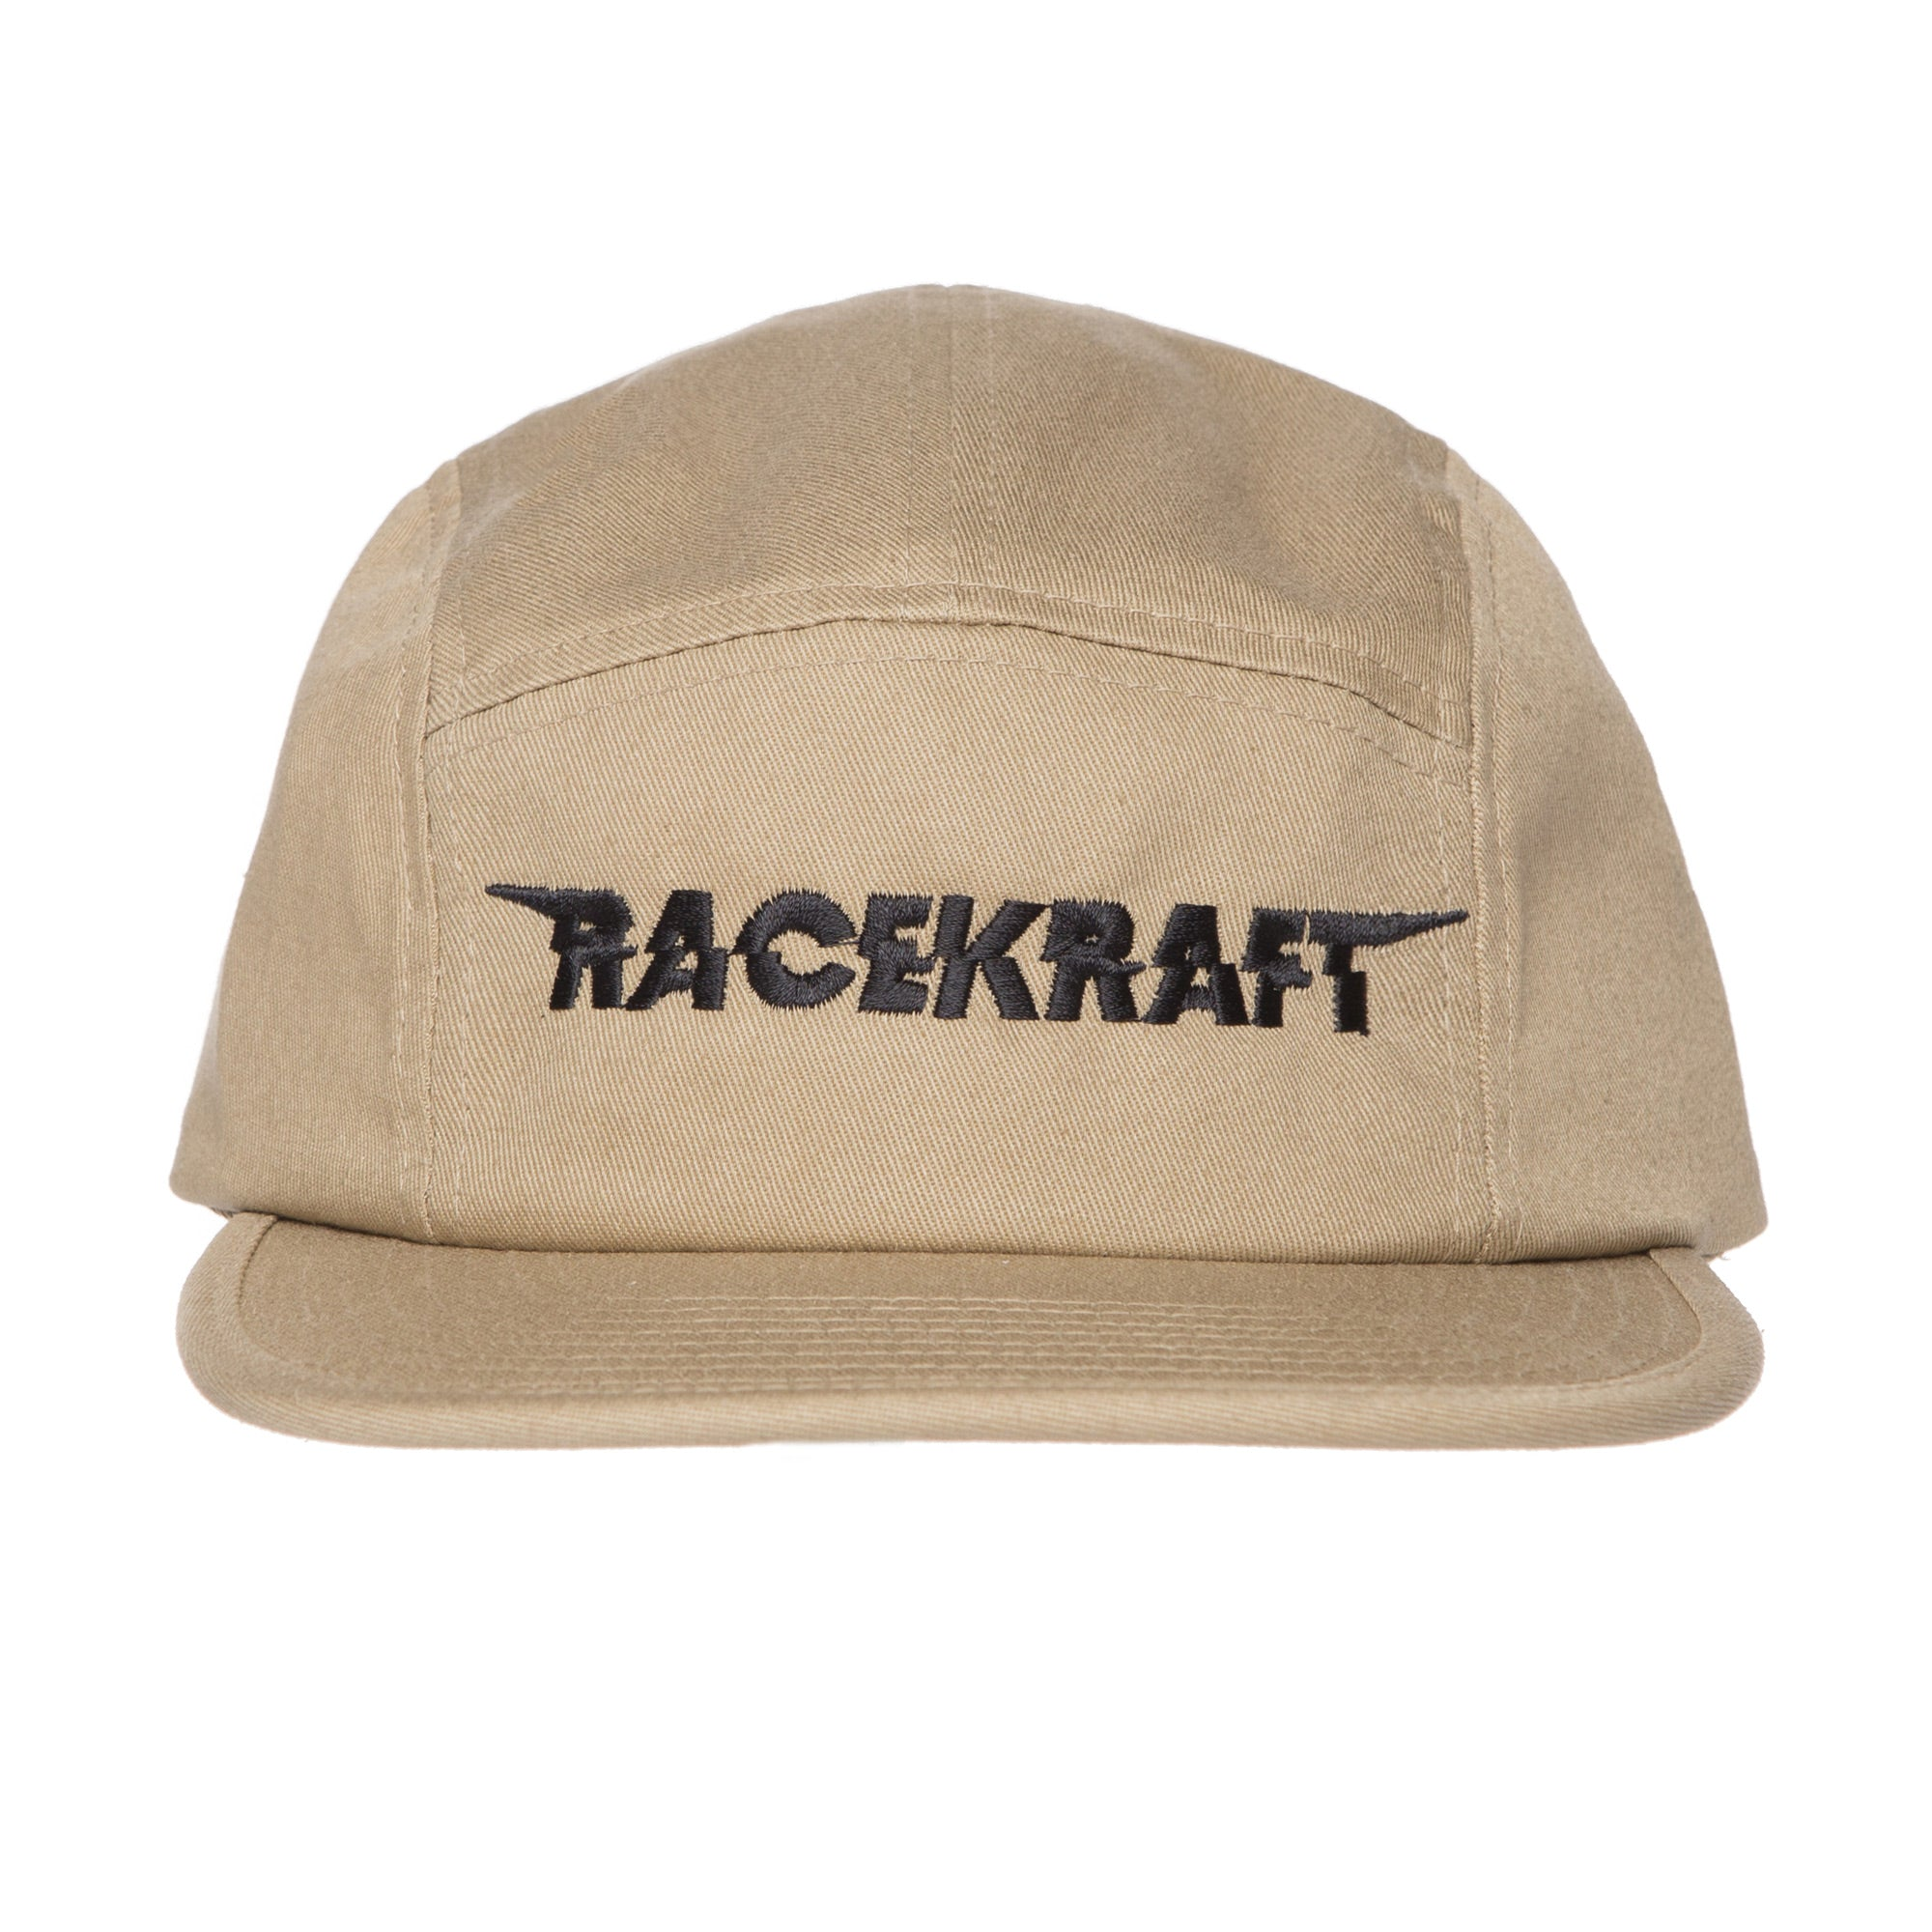 "5 Panel Khaki Cotton Cap ""Black RaceKraft"" Strapback Hat"